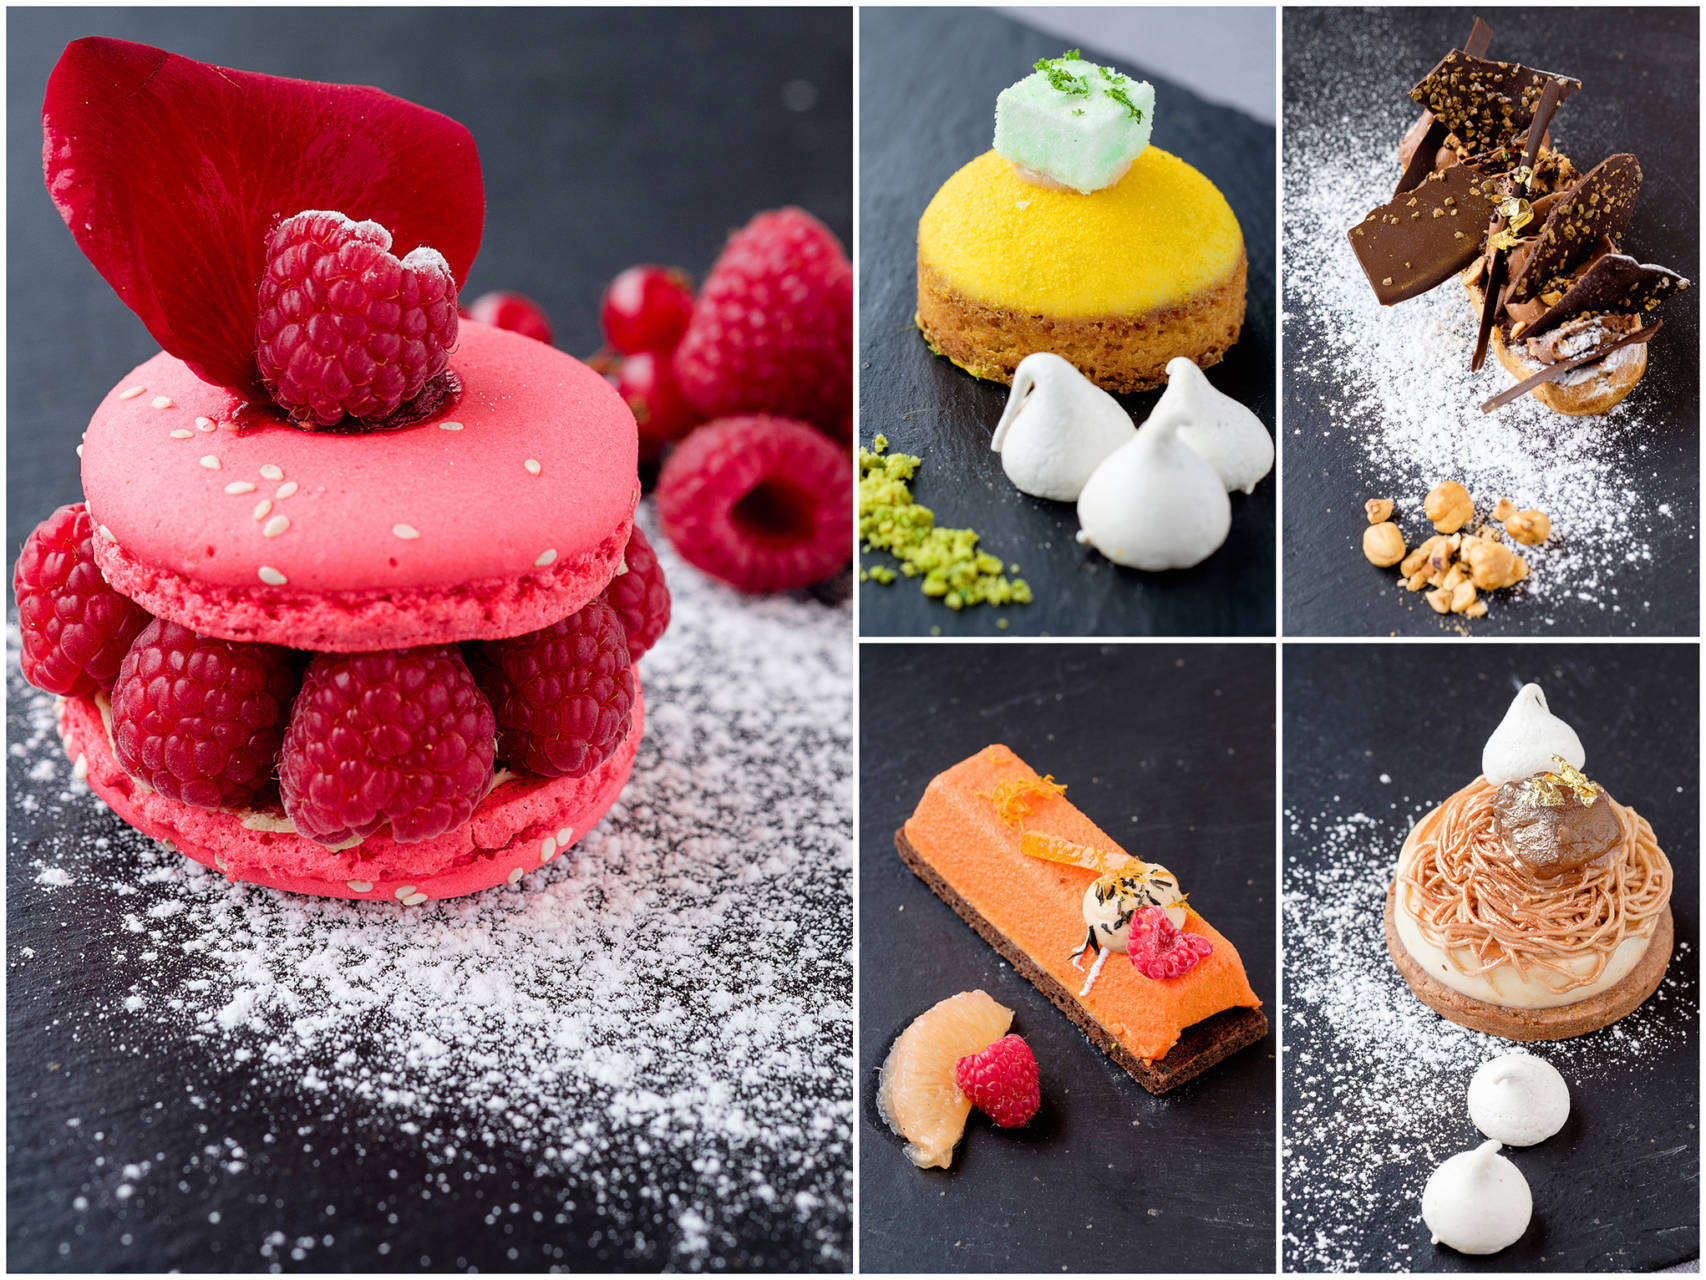 Photo culinaire / fooding